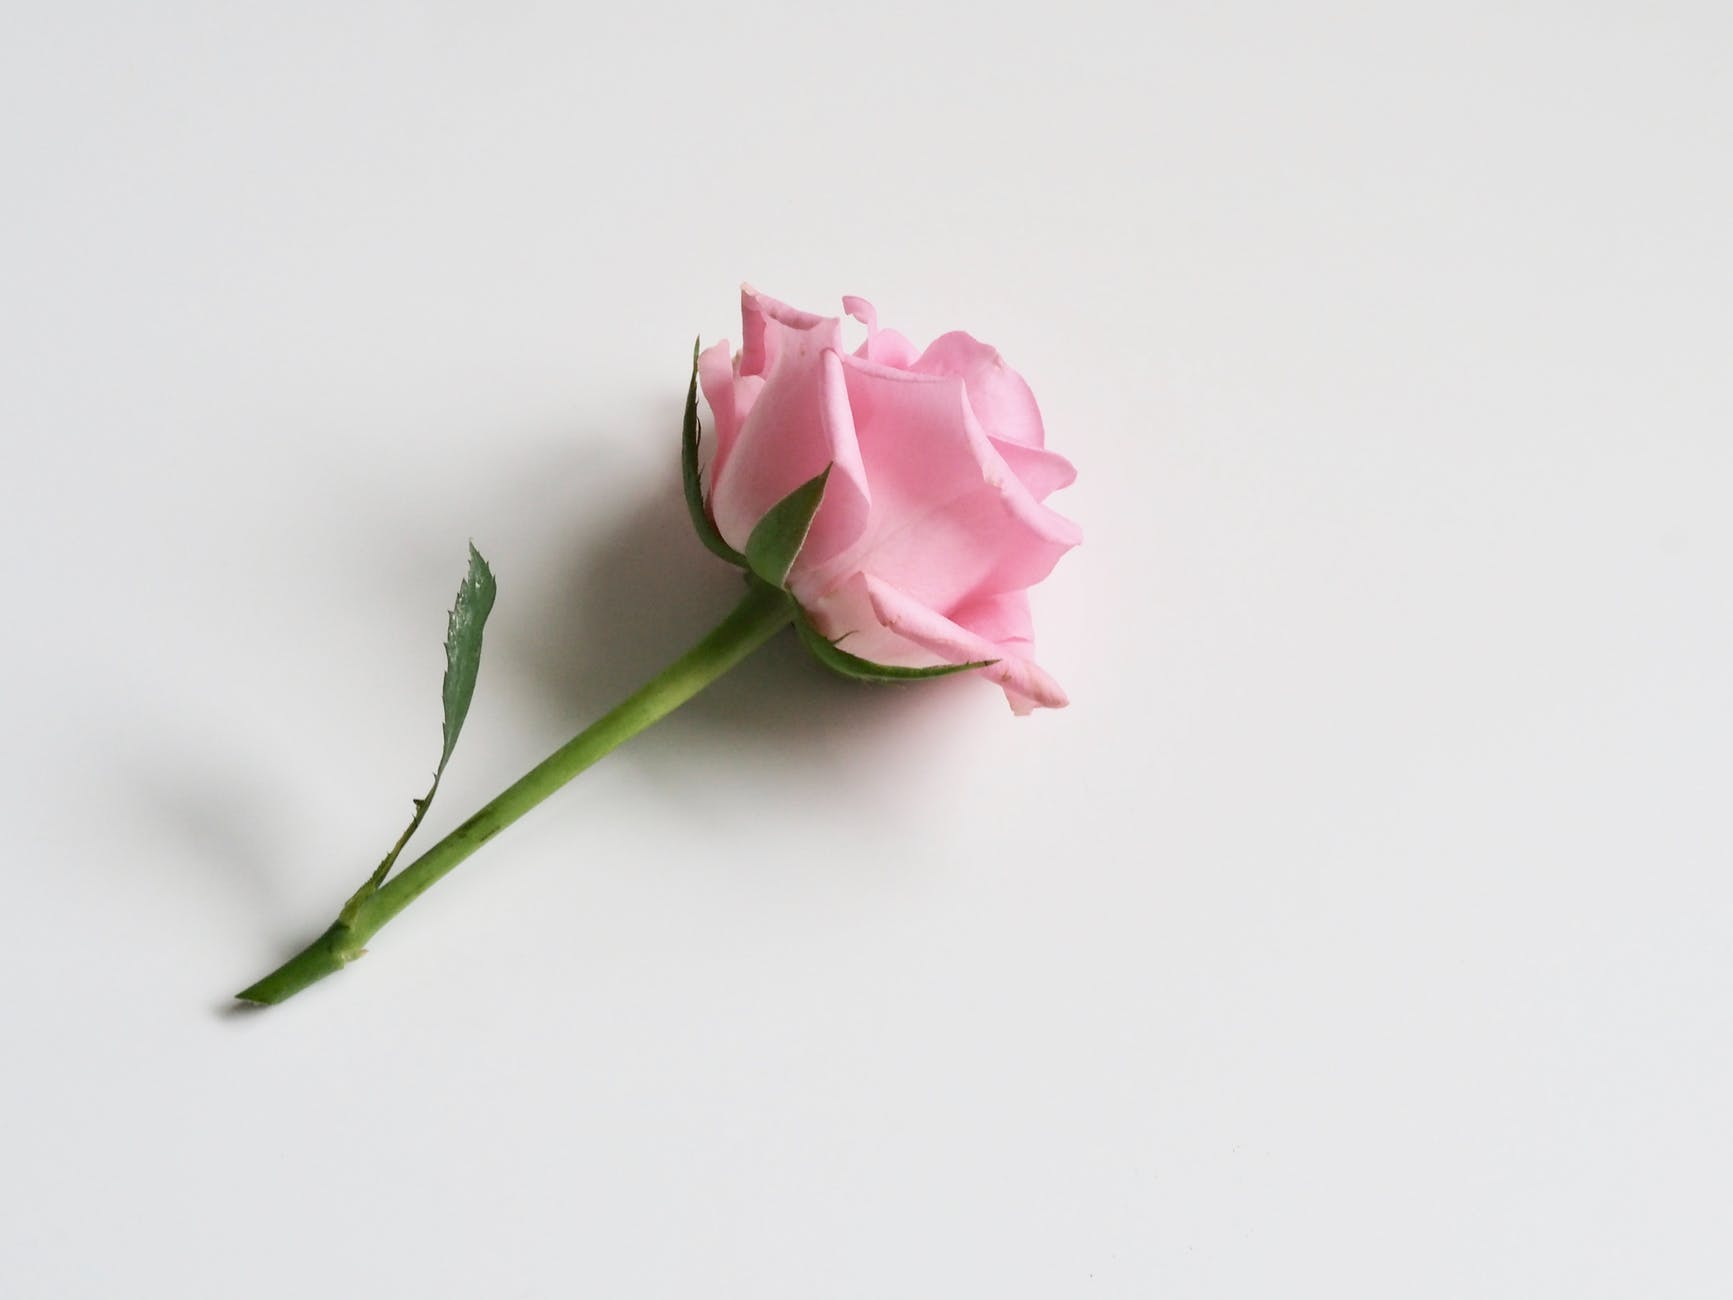 photo of pink rose on white surface